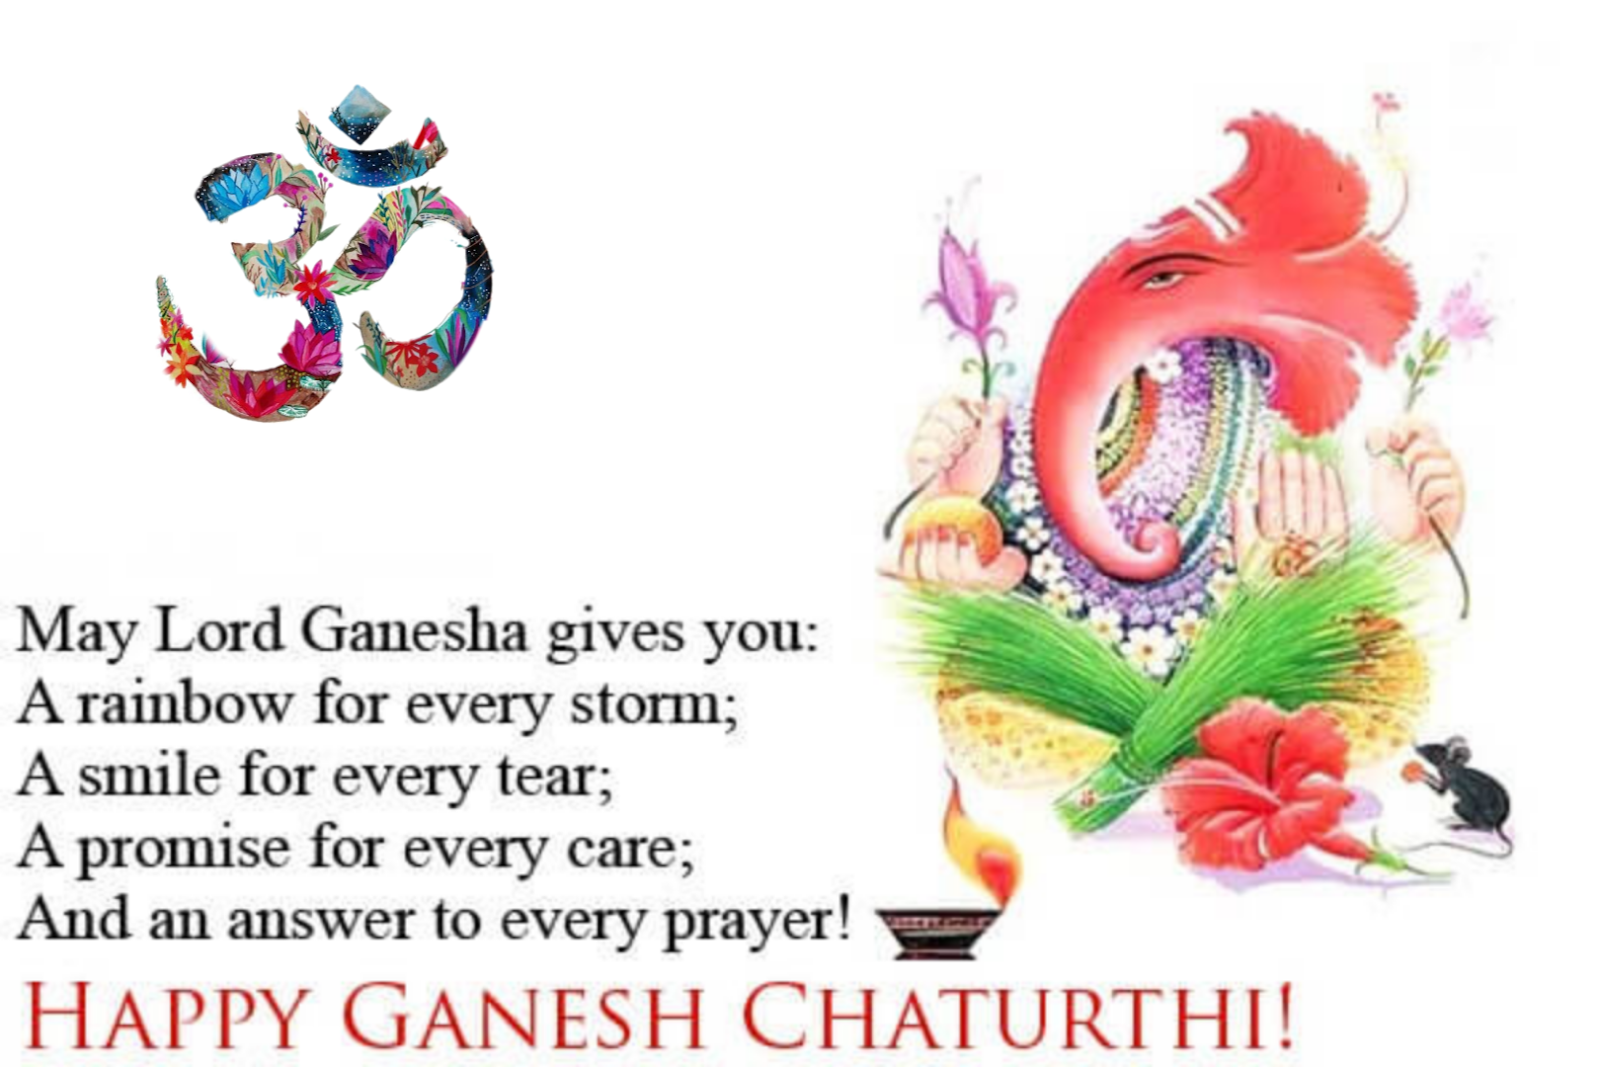 Ganesh chaturthi 2019 wishes images, gifs,hd wallpapers, photos pics whatsapp status